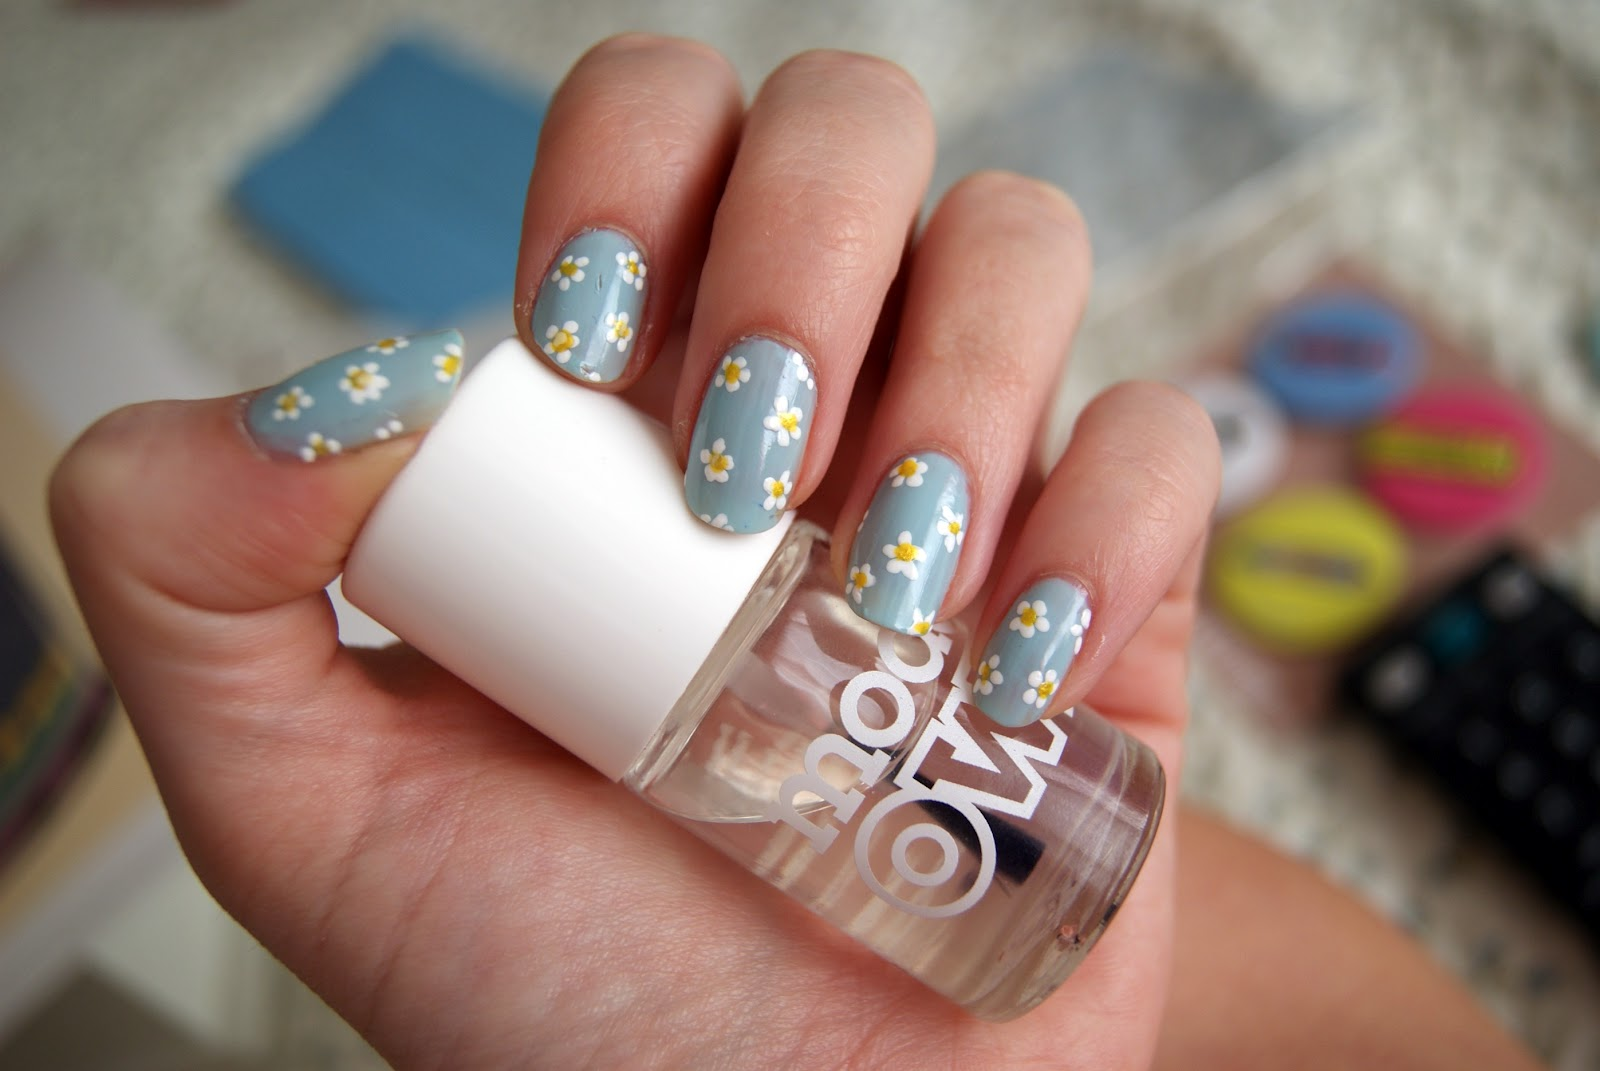 White Daisy Nail Design: Black and white daisy flower diy nail art ...